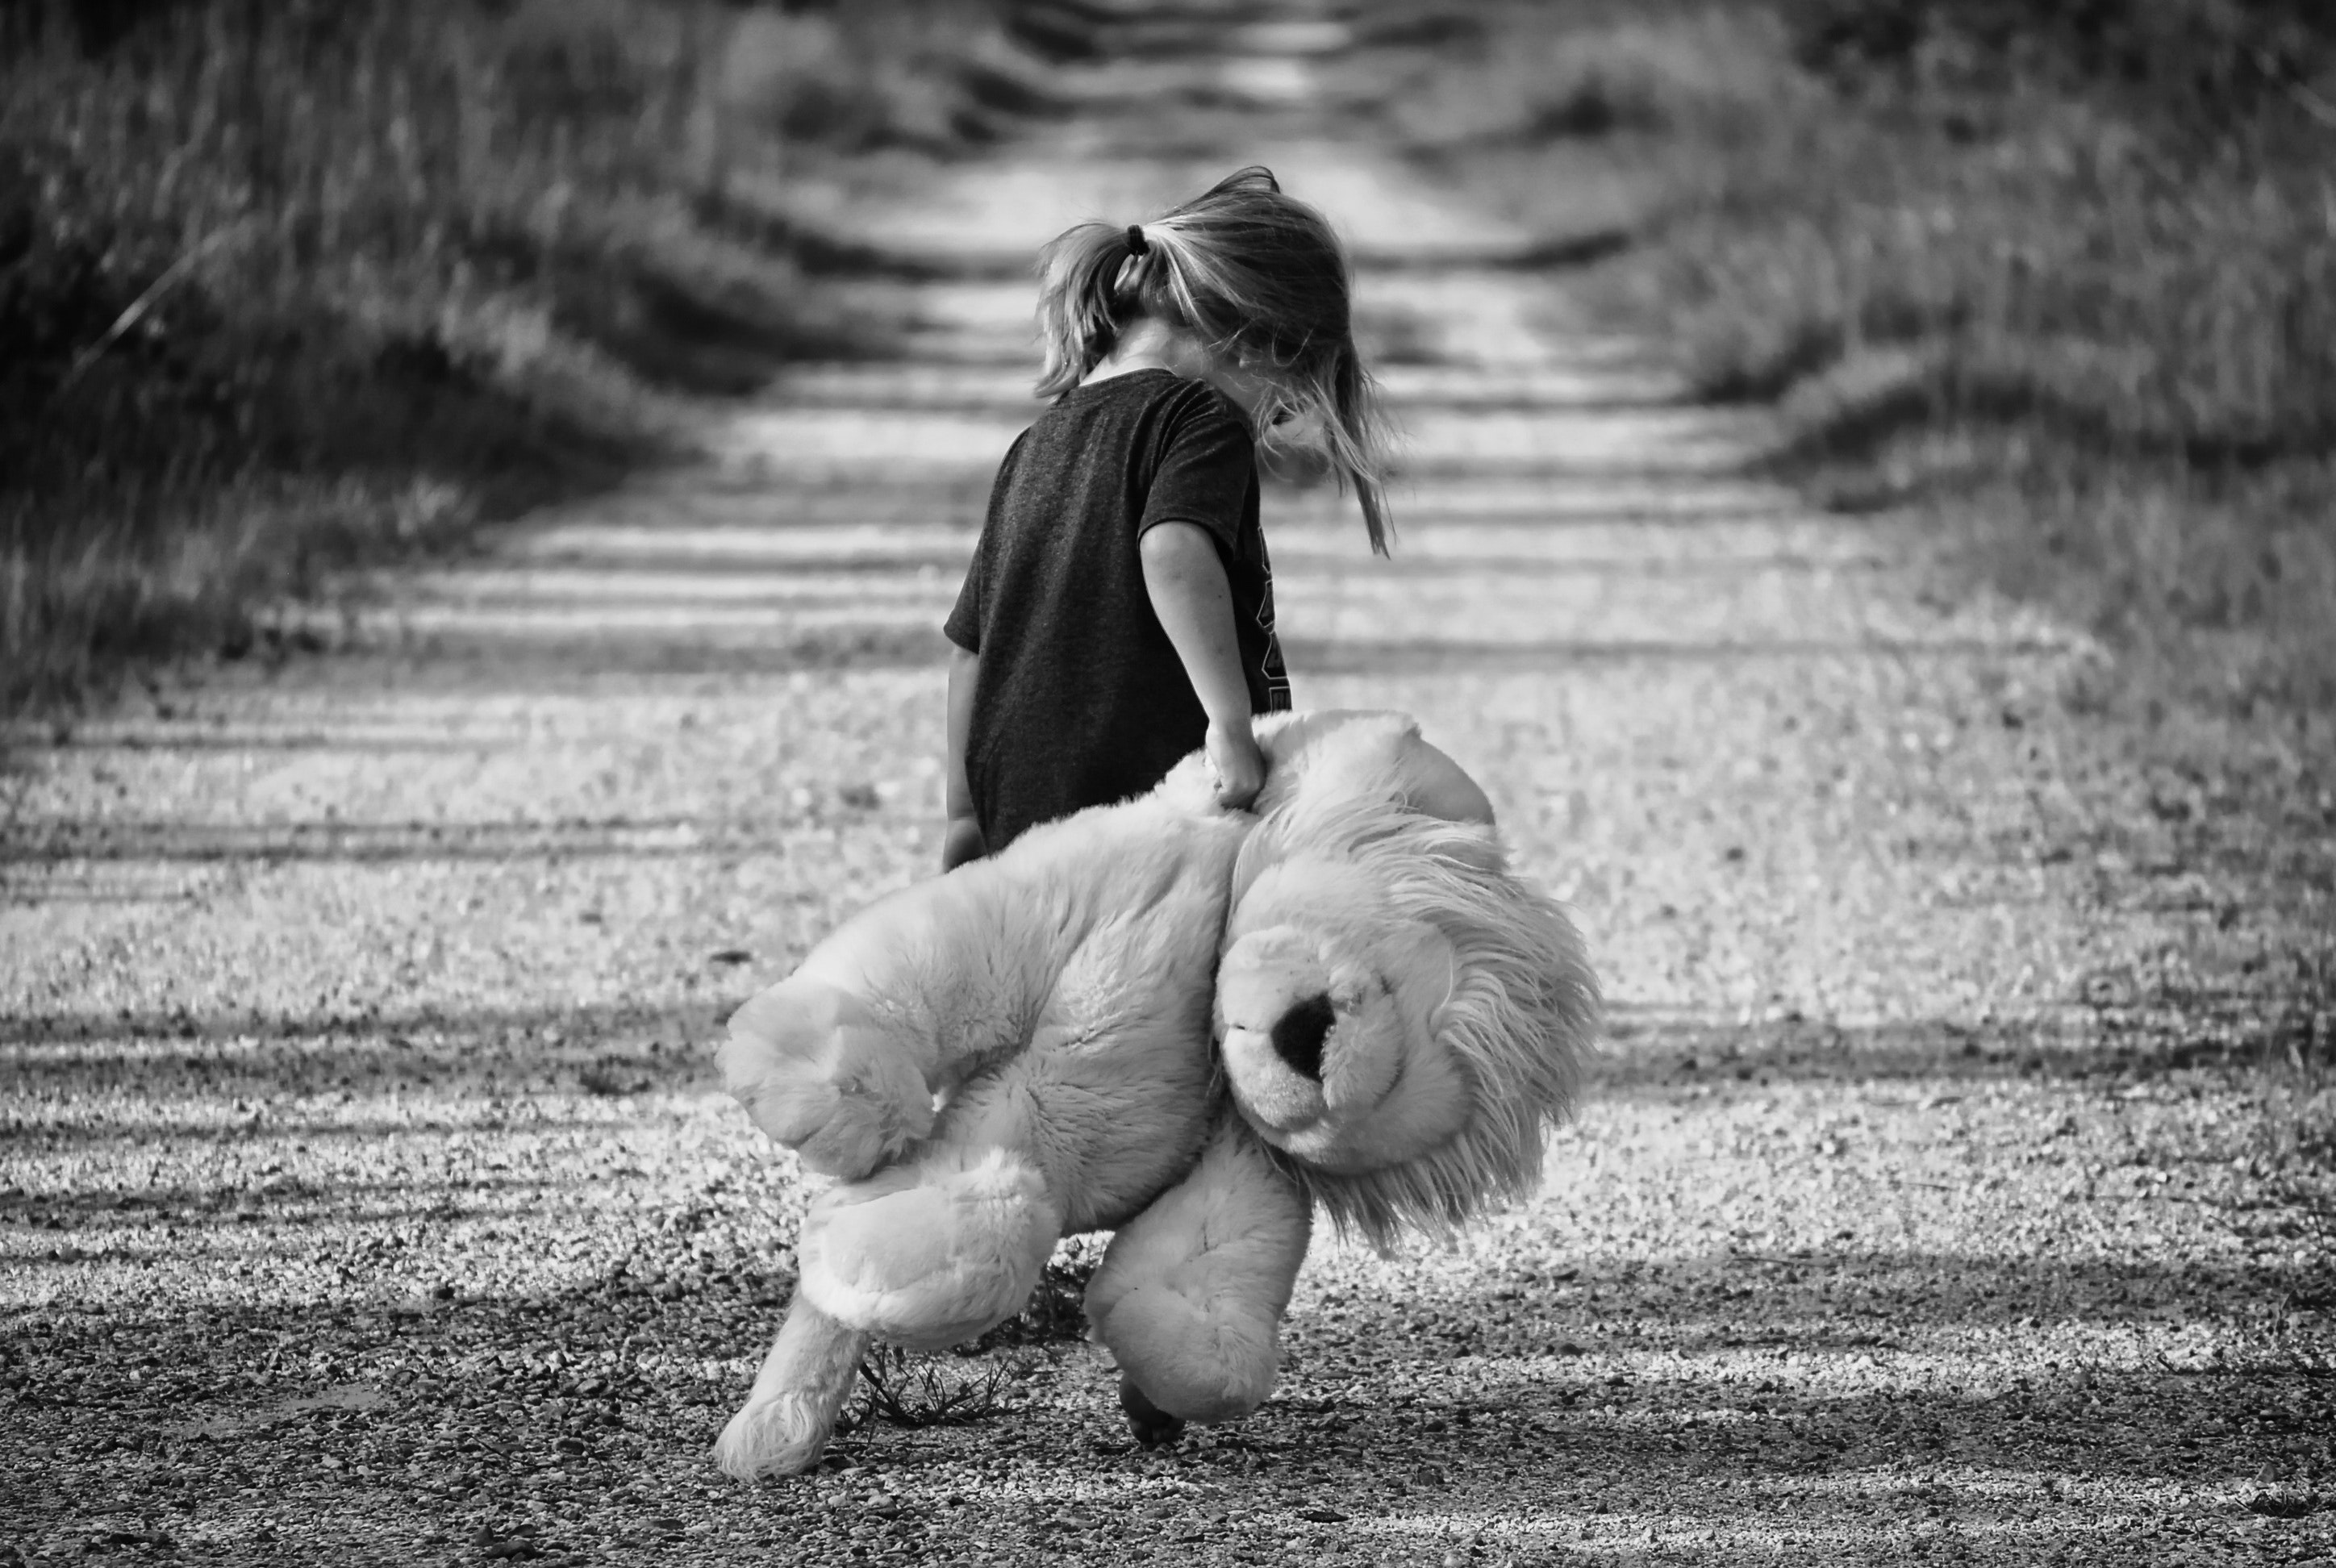 Grayscale photography of girl holding plush toy · free stock photo